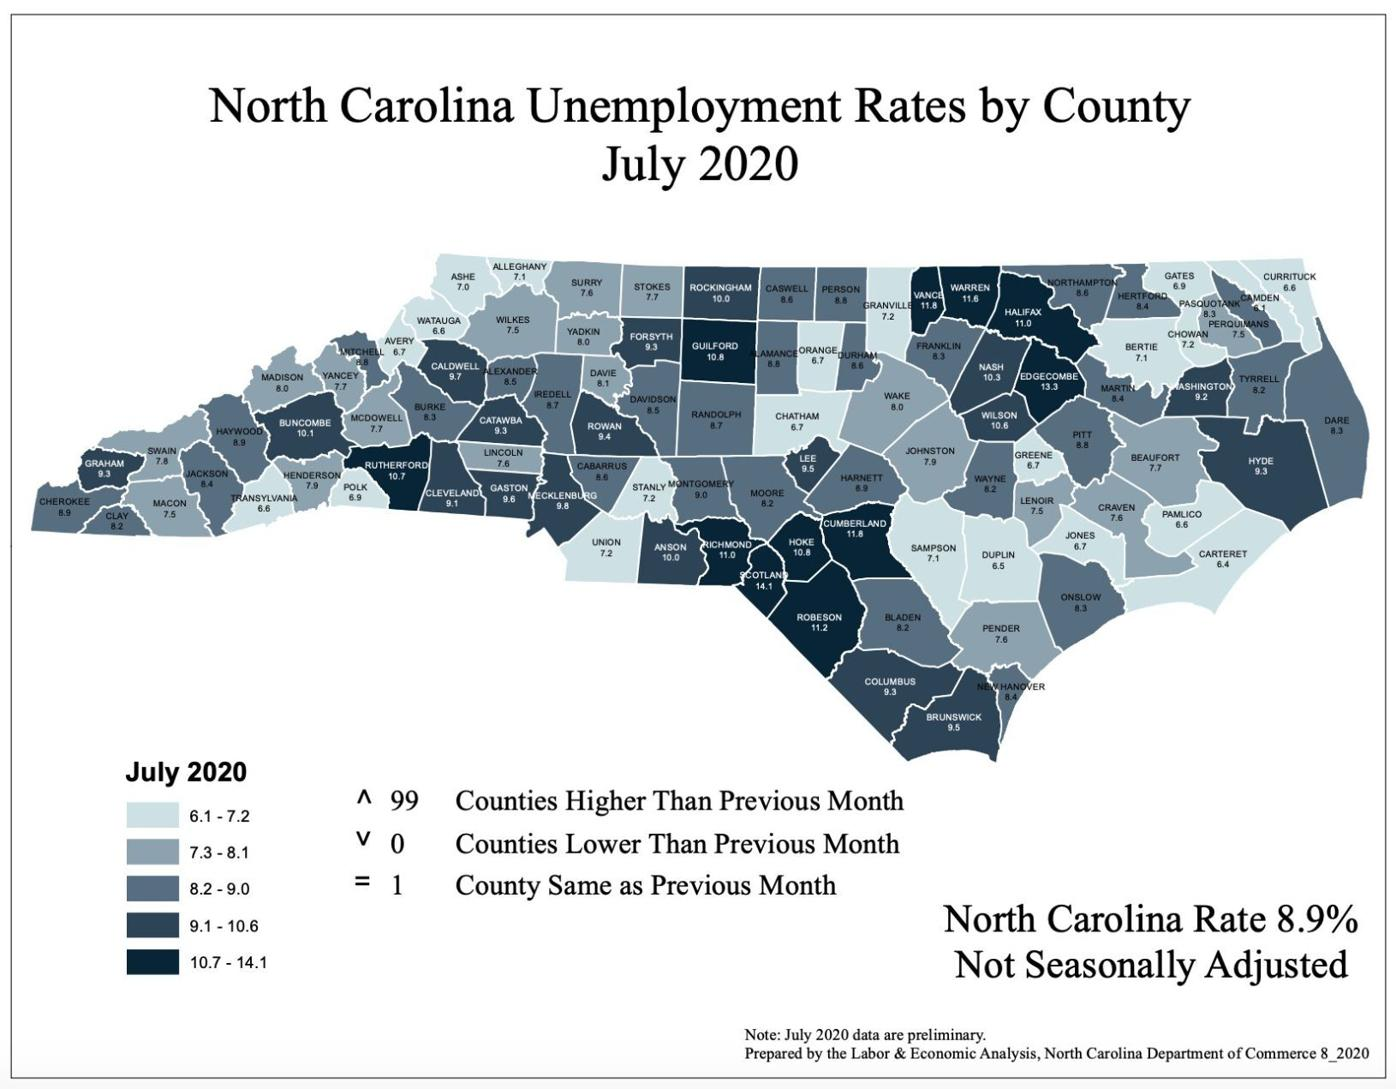 July 2020 Employment map